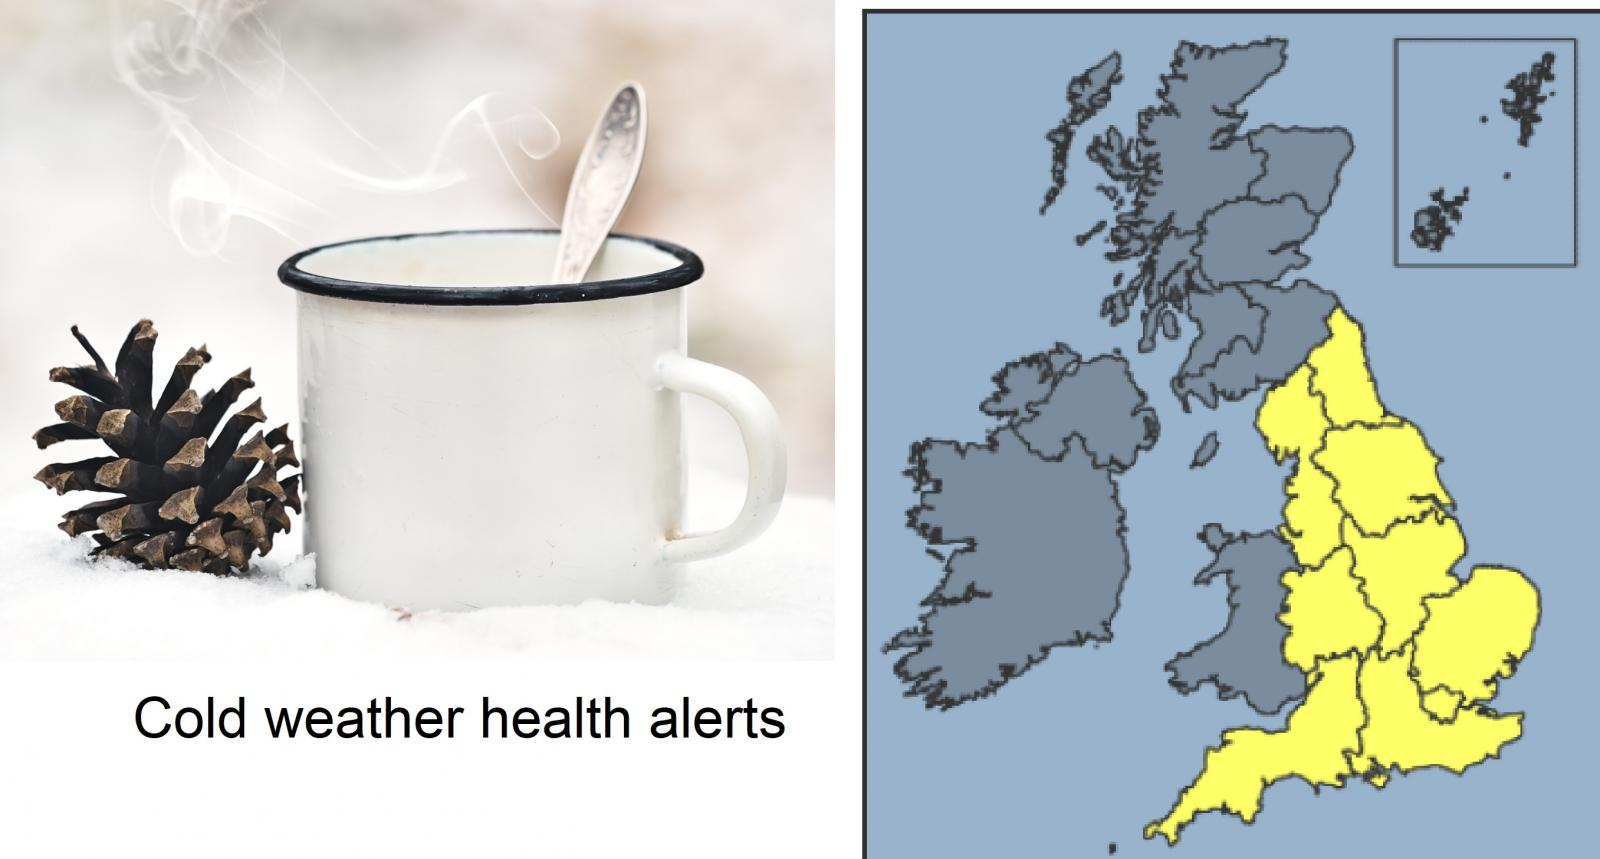 Cold weather Health alerts and Cold weather payments